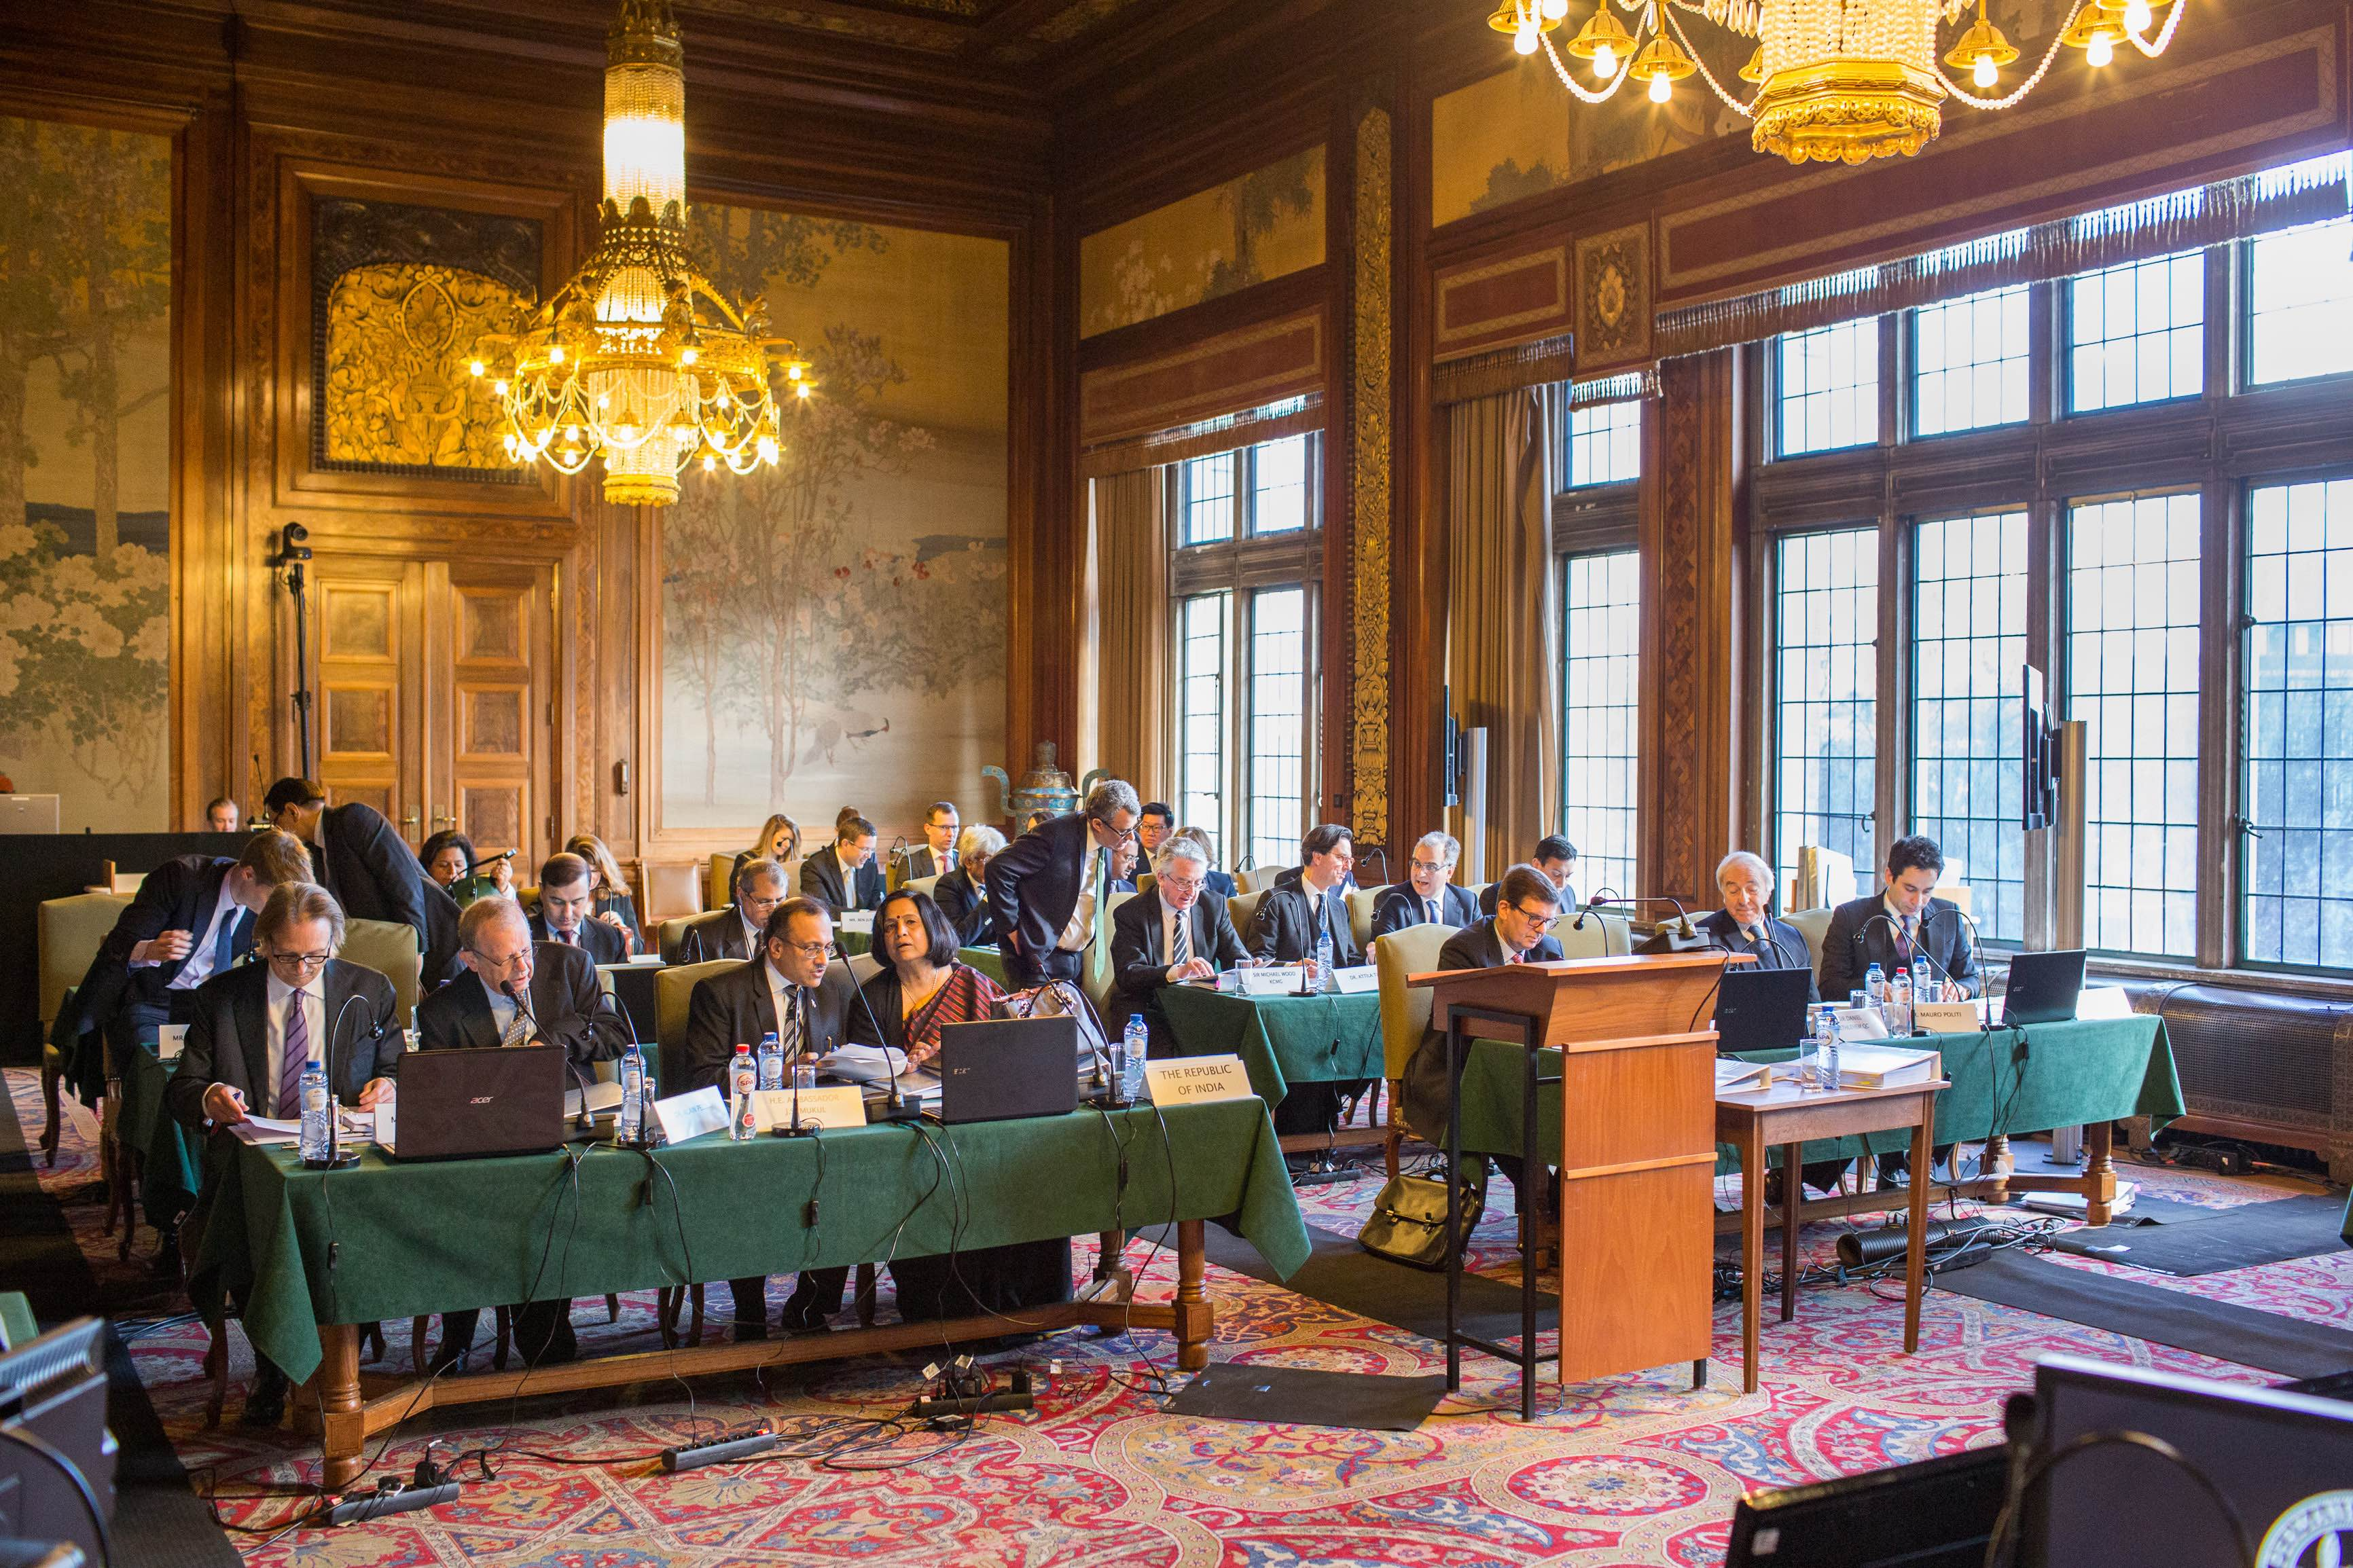 The Indian and Italian legal teams at a hearing of the arbitral tribunal in the Enrica Lexie case at the Permanent Court of Arbitration in The Hague. Credit: PCA